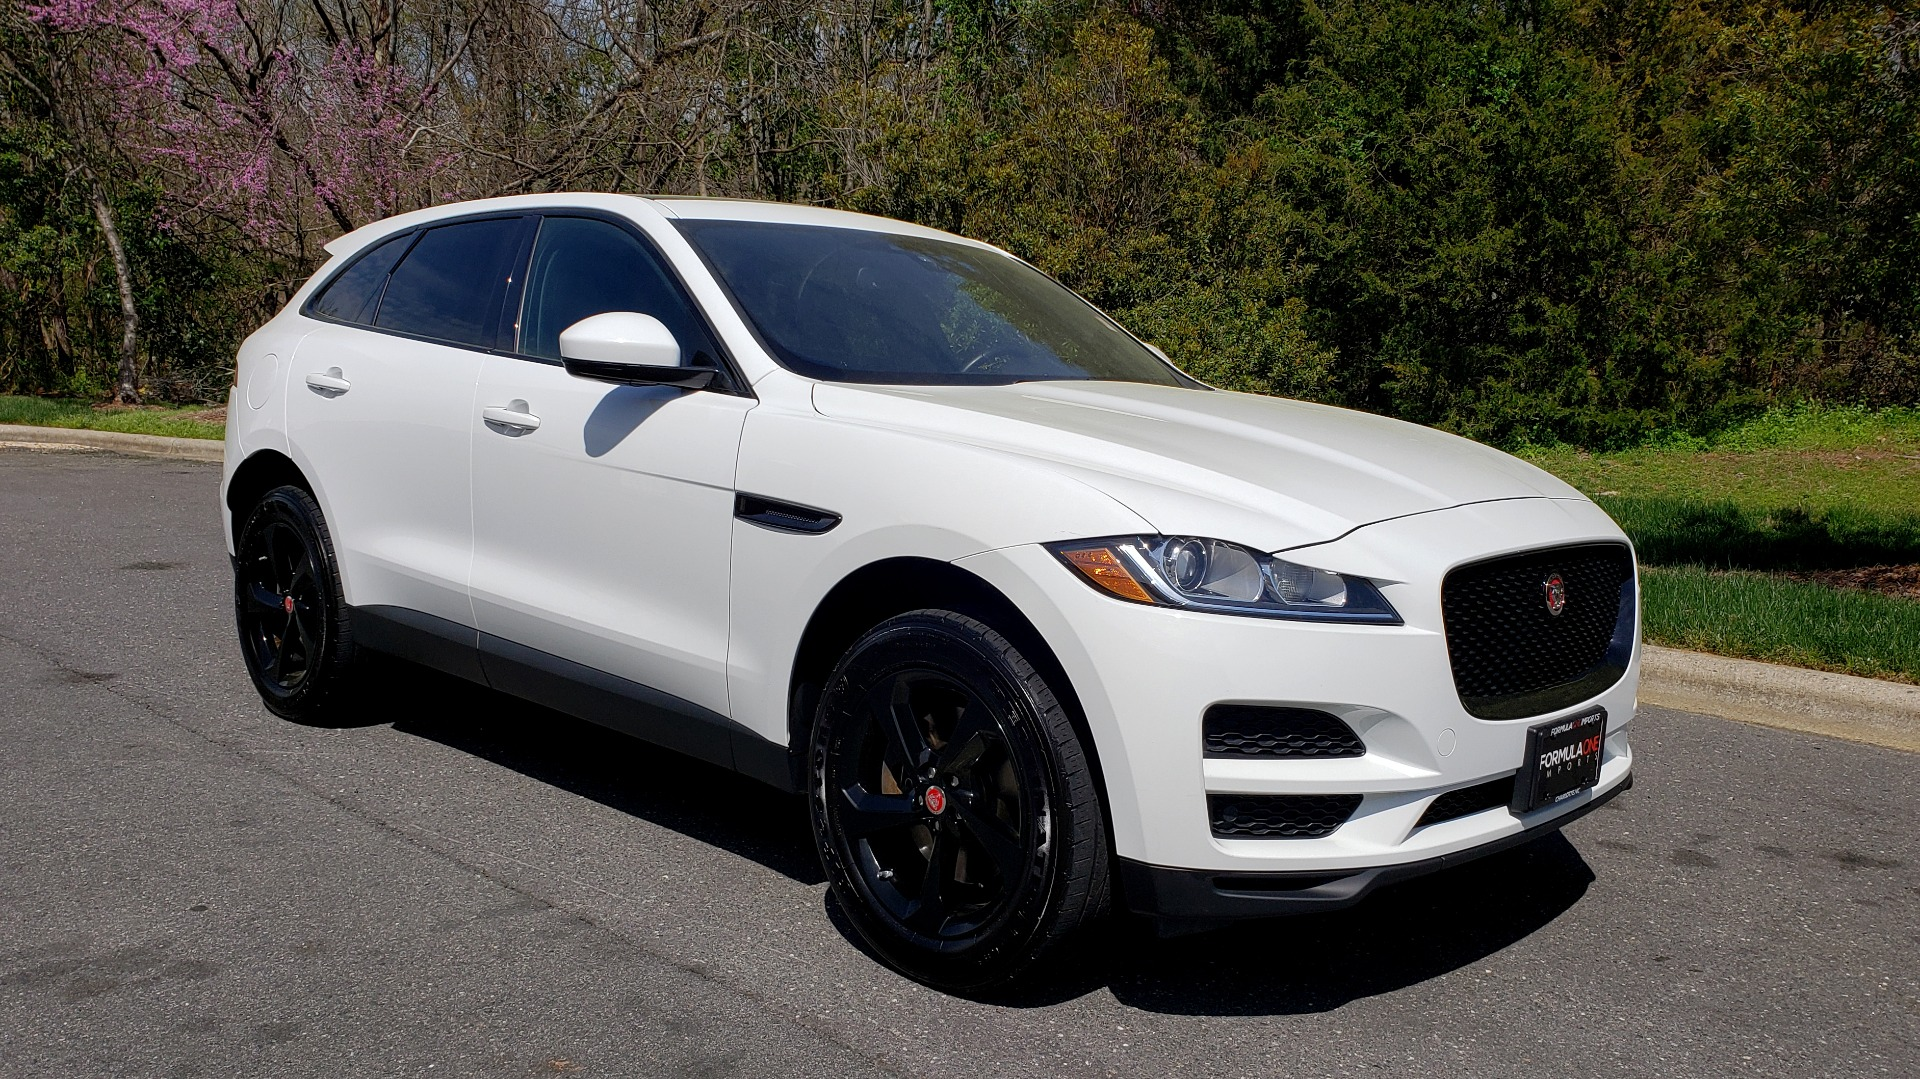 Used 2017 Jaguar F-PACE 35T PREMIUM / NAV / PANO-ROOF/ REARVIEW / BLK PKG for sale Sold at Formula Imports in Charlotte NC 28227 4